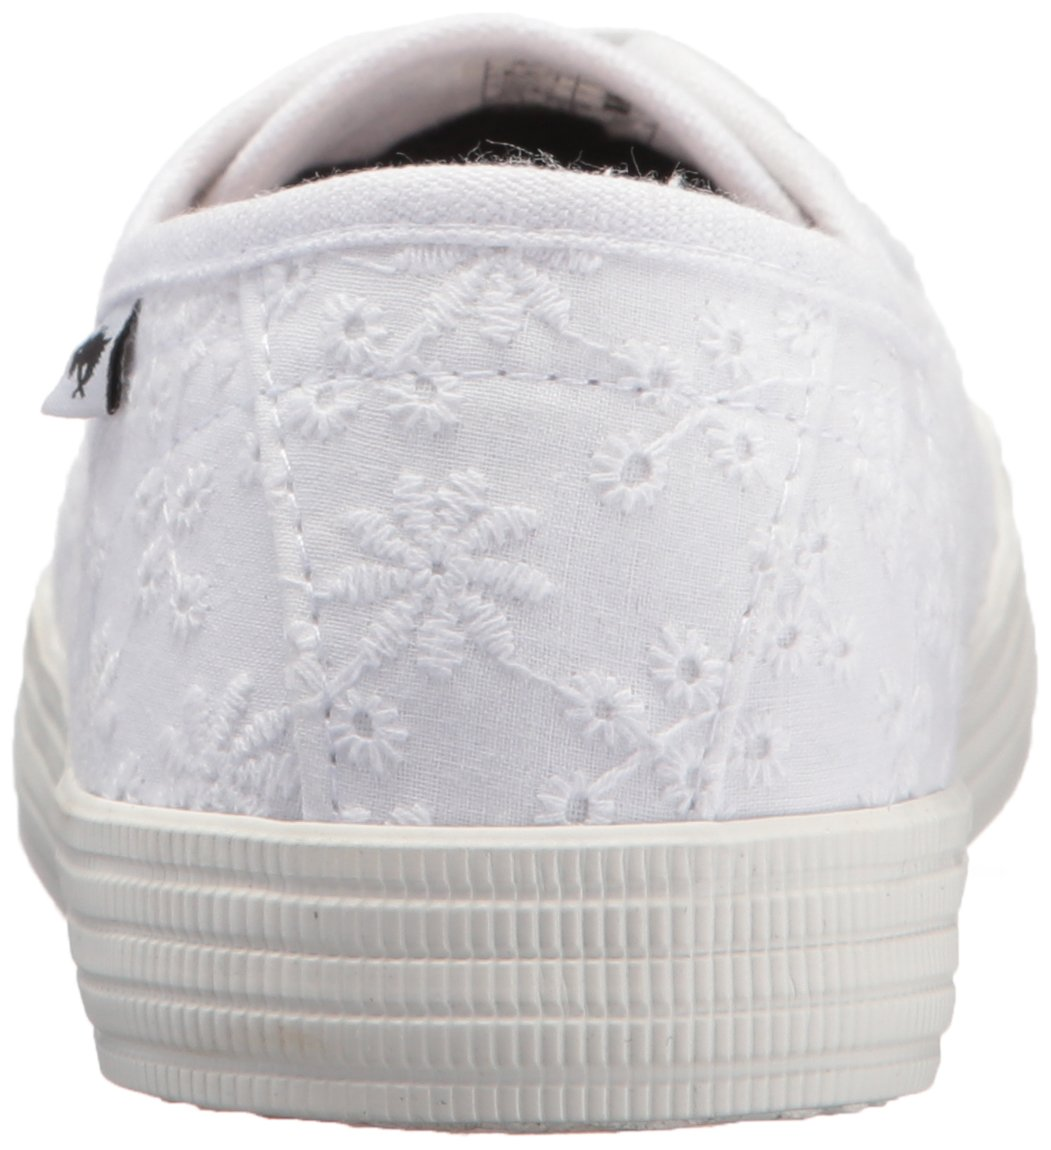 Rocket Dog Women's Chowchow Lucky Eyelet Cotton Sneaker, White, 9.5 Medium US by Rocket Dog (Image #2)